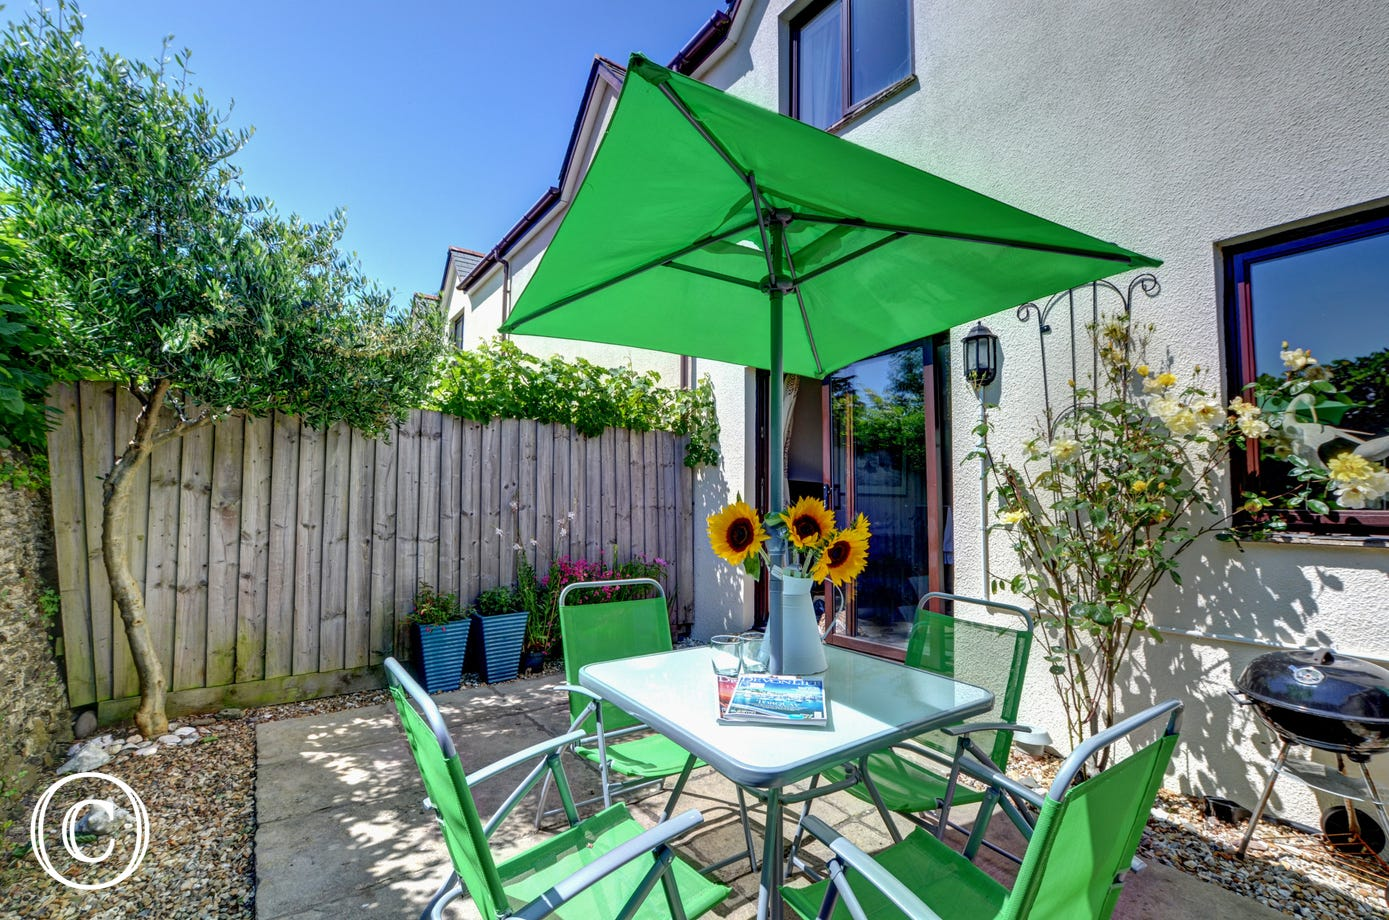 A real suntrap and lovely for breakfast or barbecues